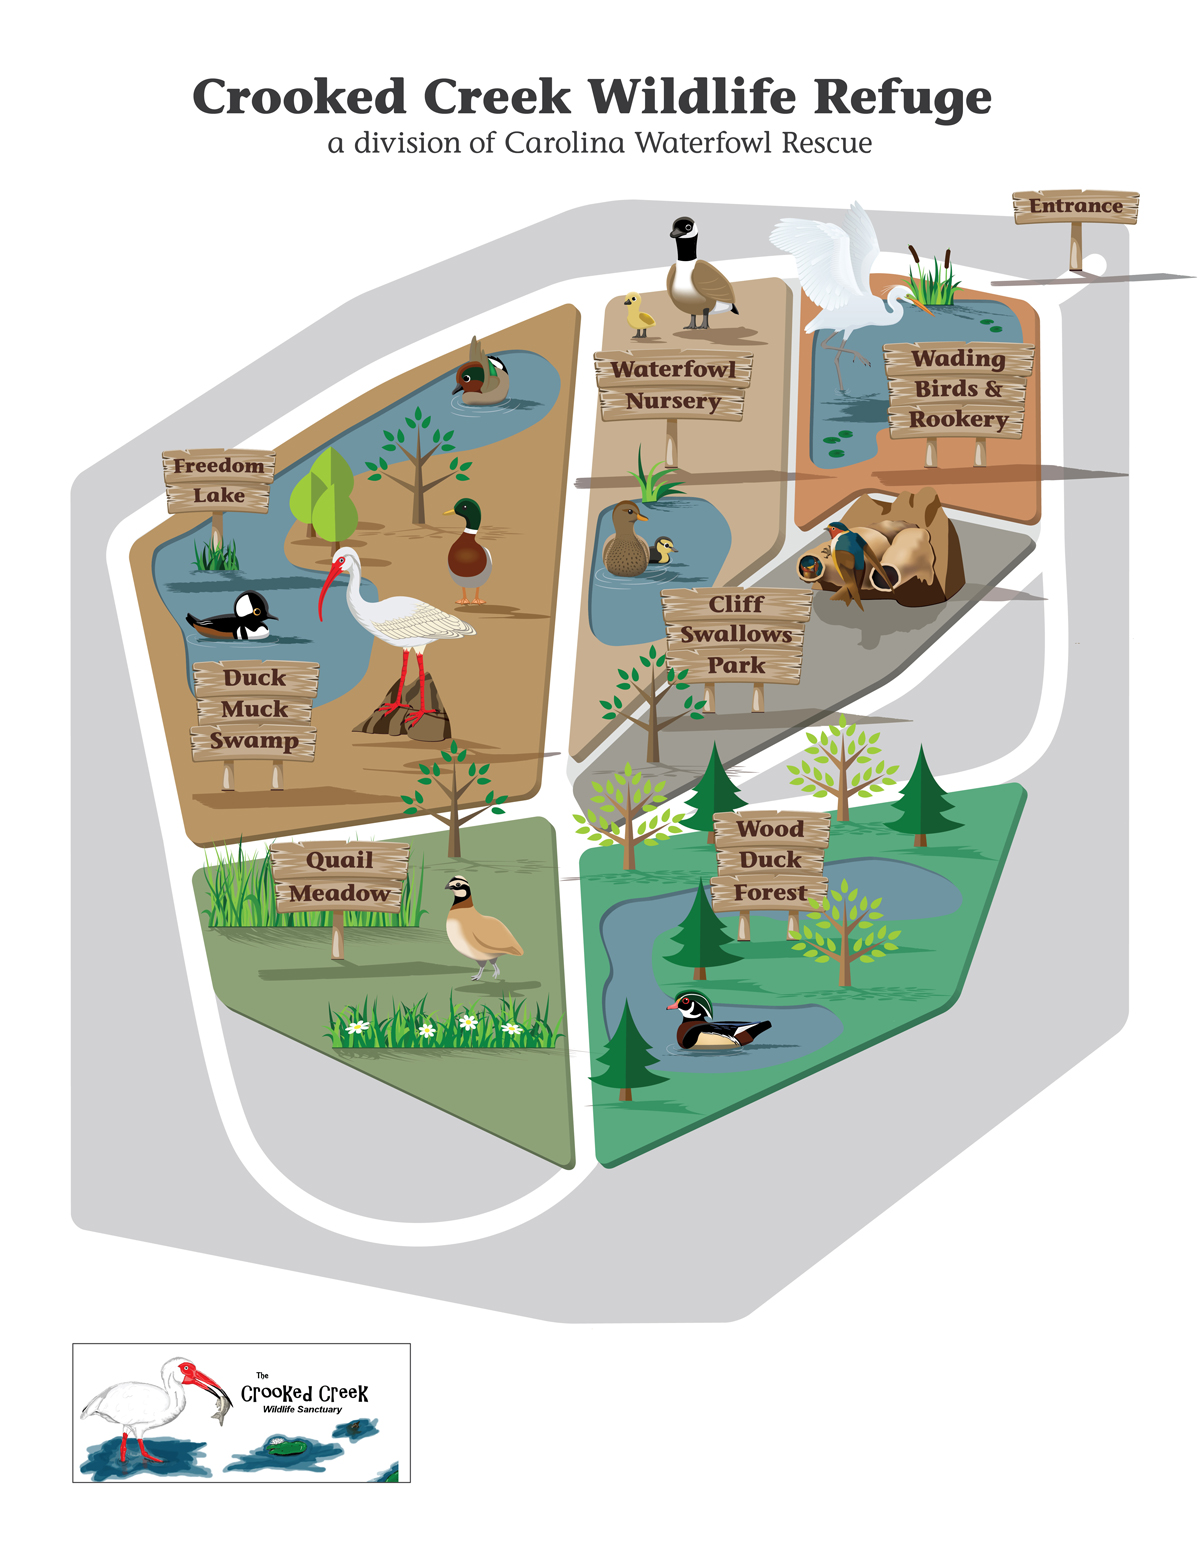 Map of Crooked Creek Wildlife Refuge, a division of Carolina Waterfowl Rescue, by Dawn Cavalieri.